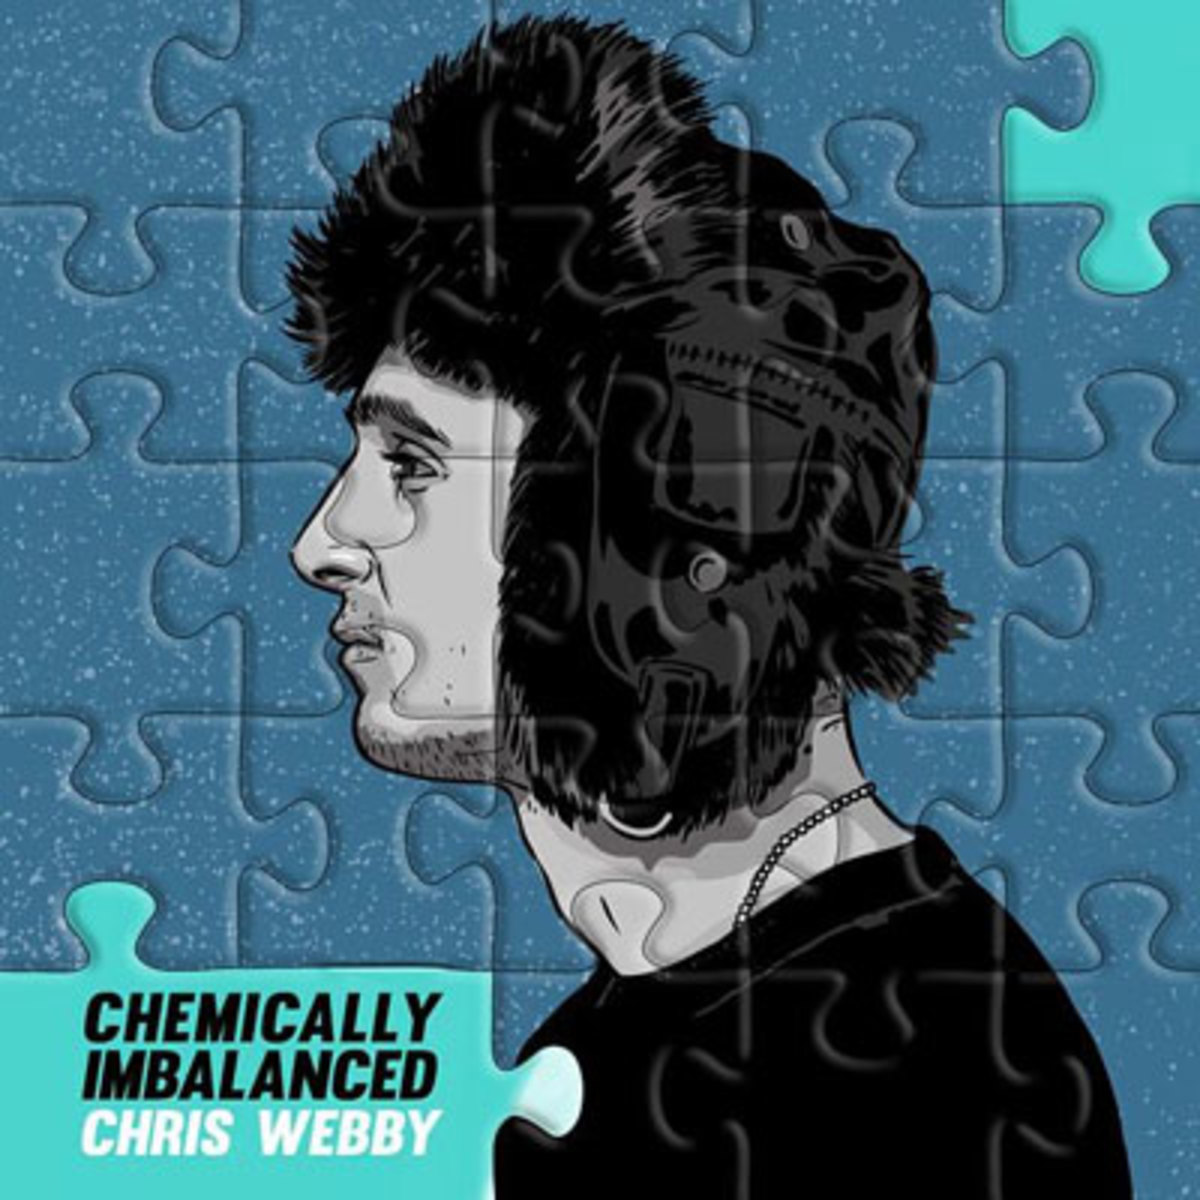 chriswebby-chemicallyimbalanced.jpg